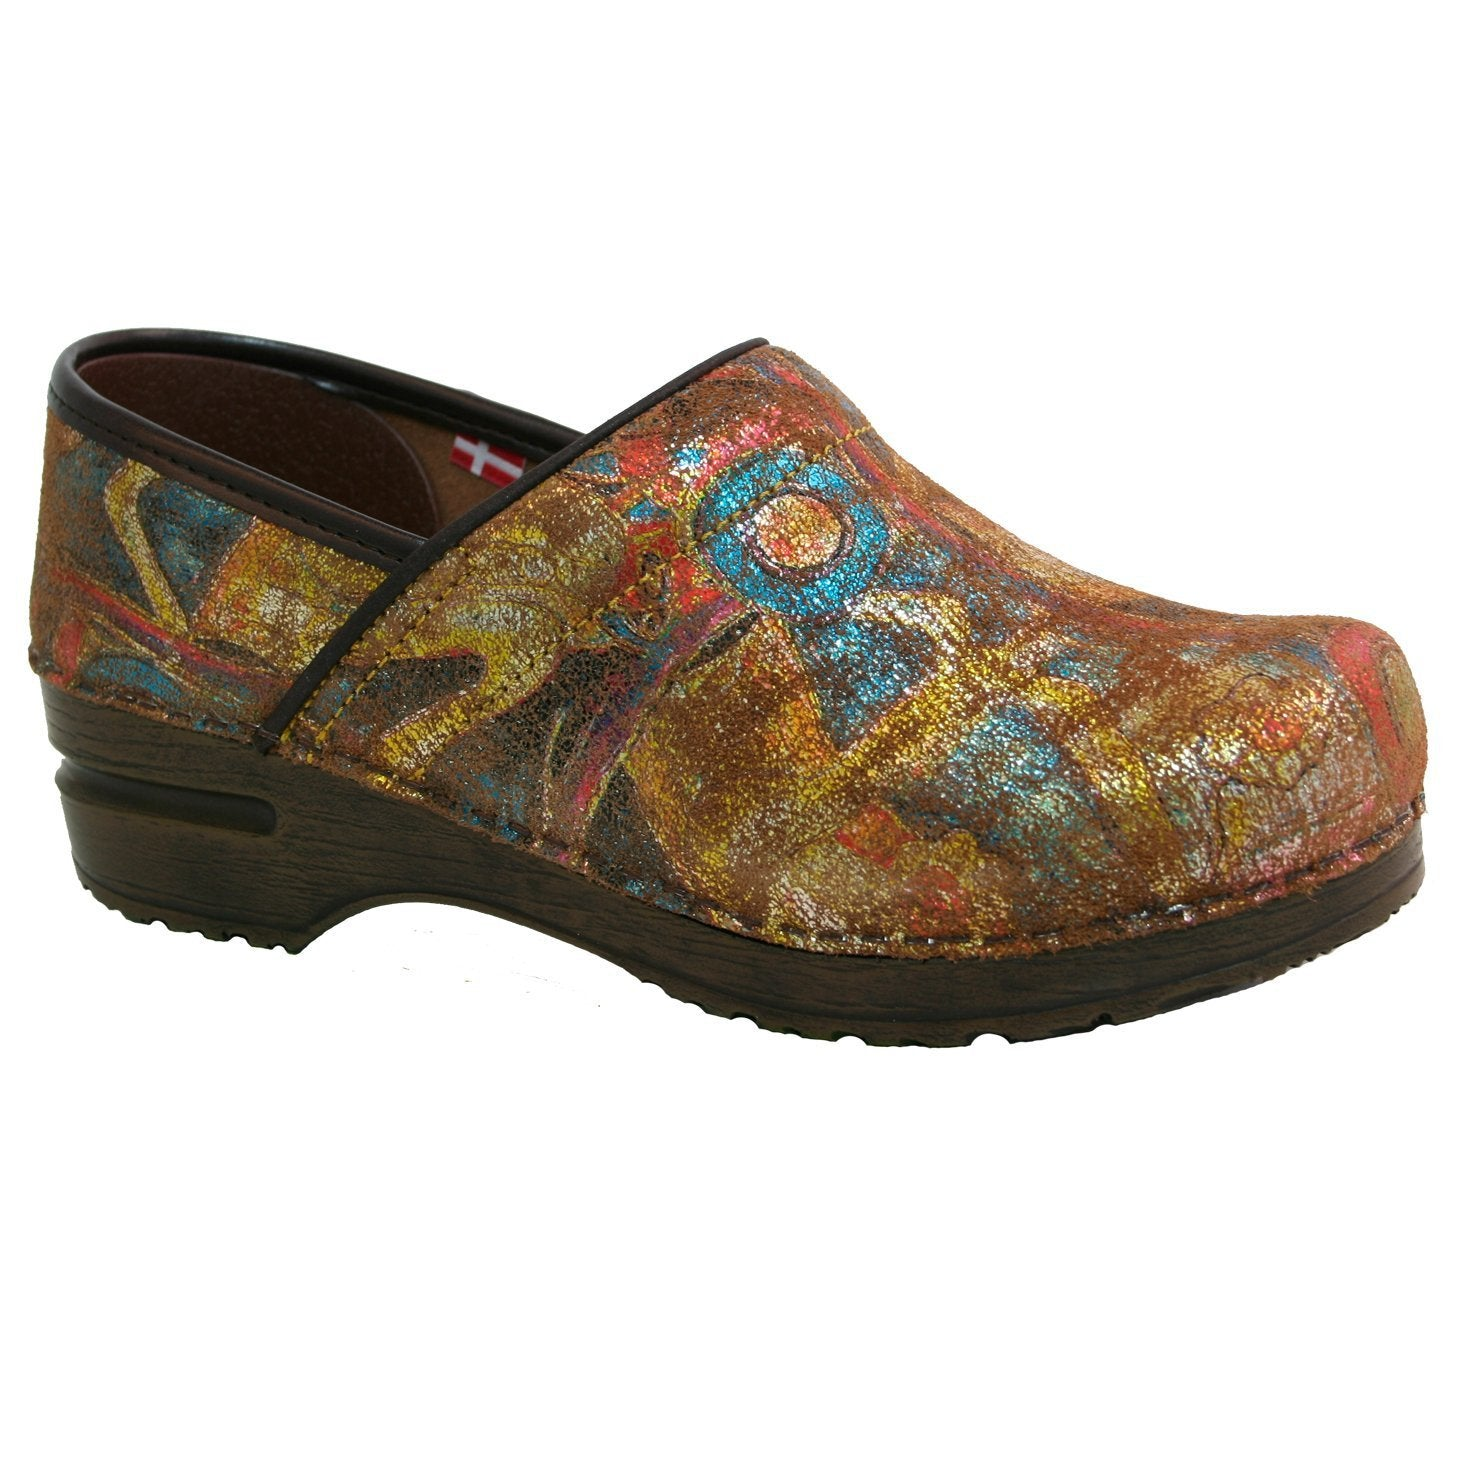 Sanita Helen Women's Closed Back Clog